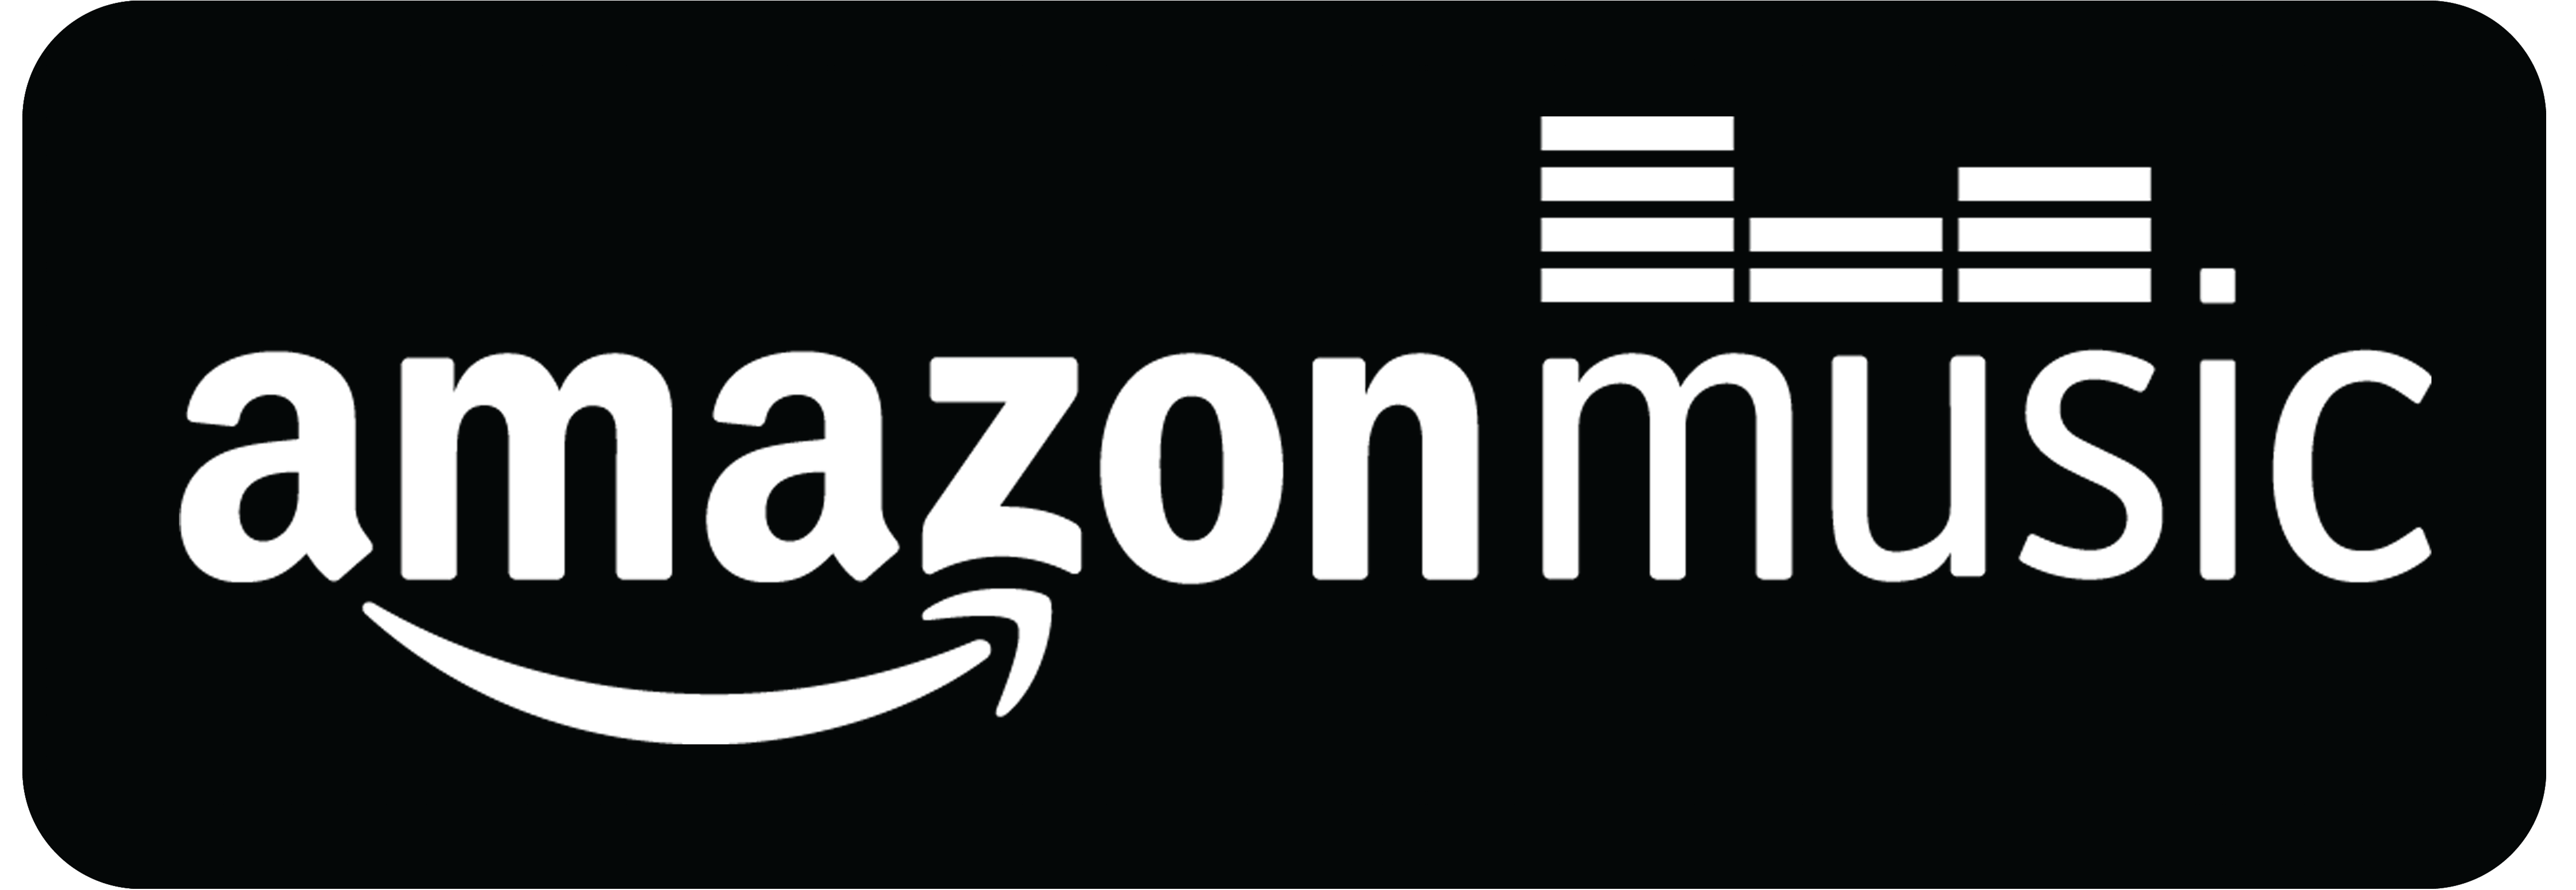 Amazon music logo